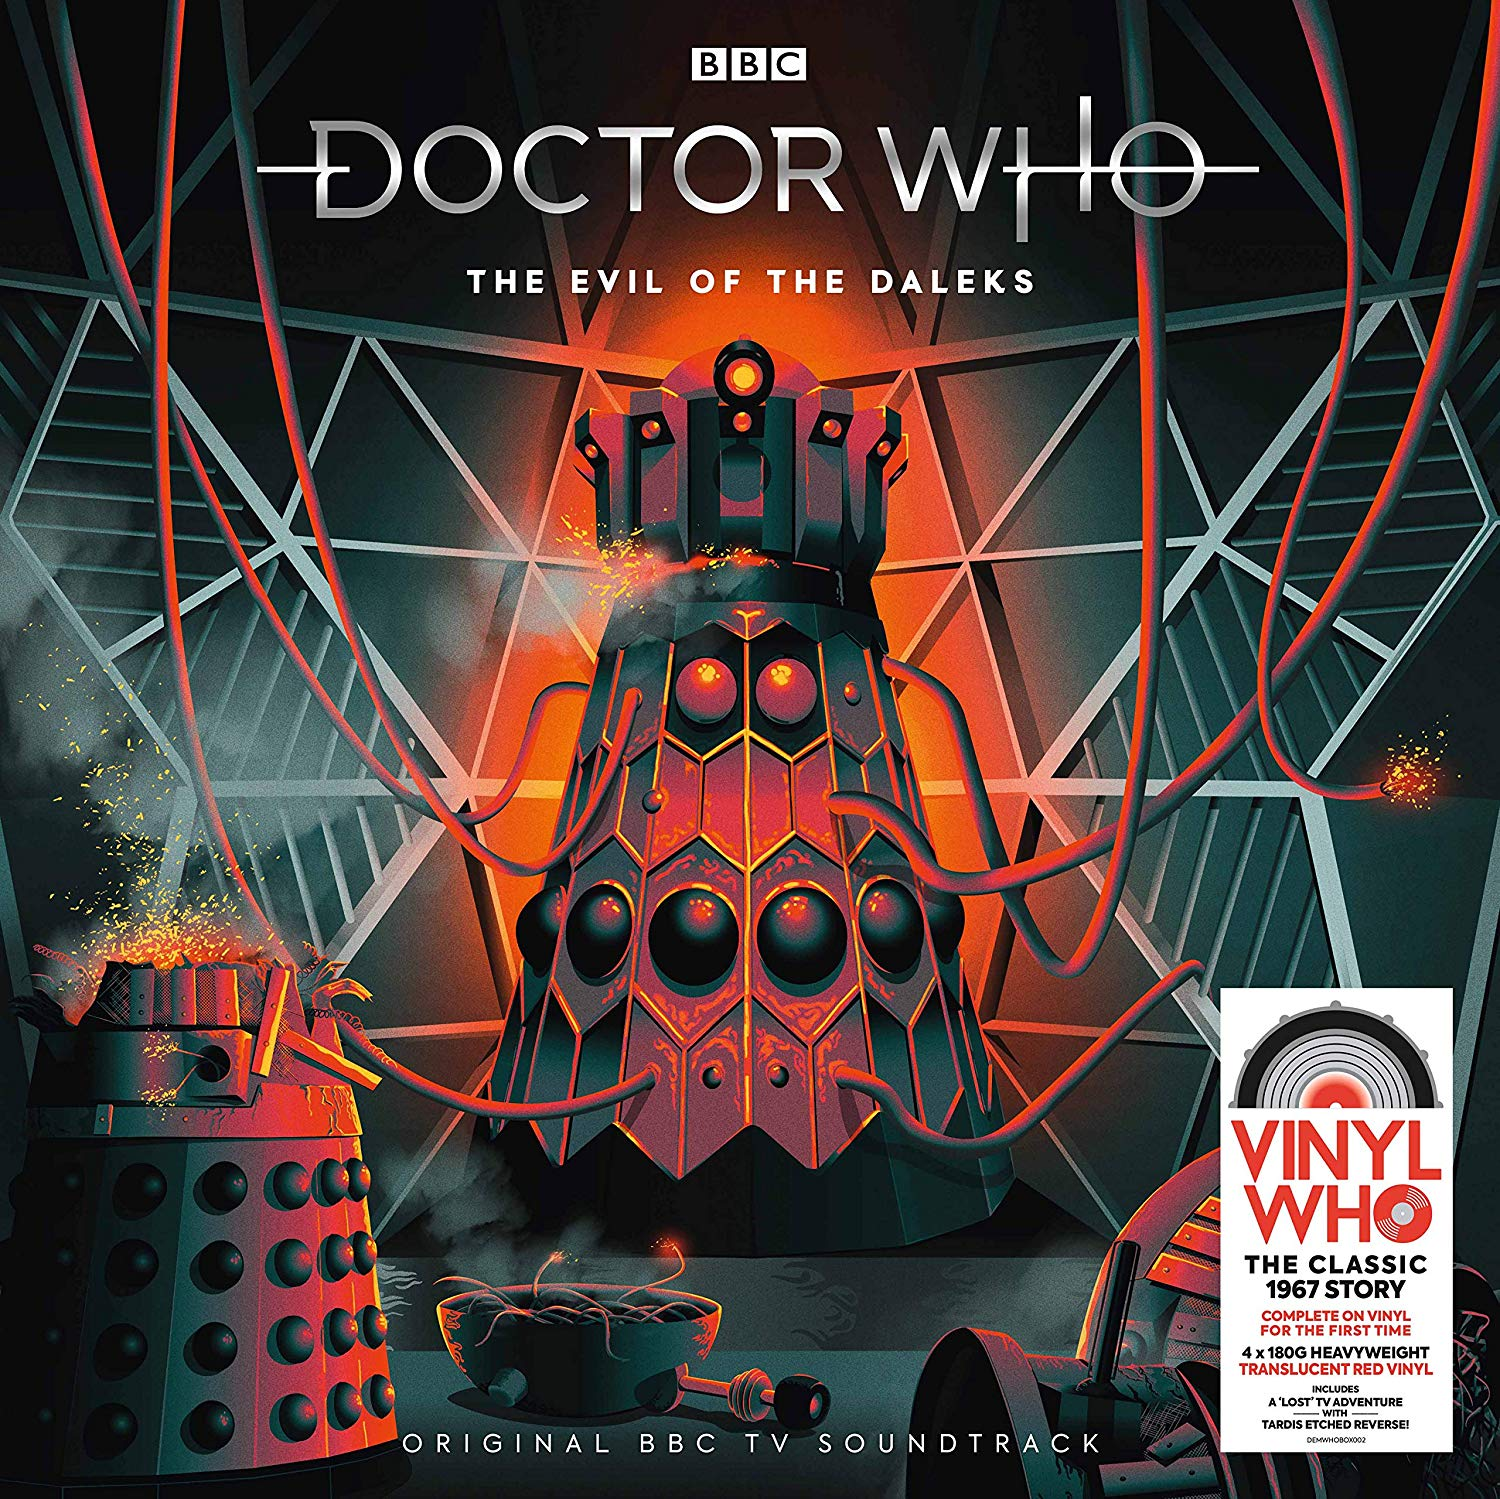 COMING SOON: The Evil of the Daleks on Vinyl - Blogtor Who